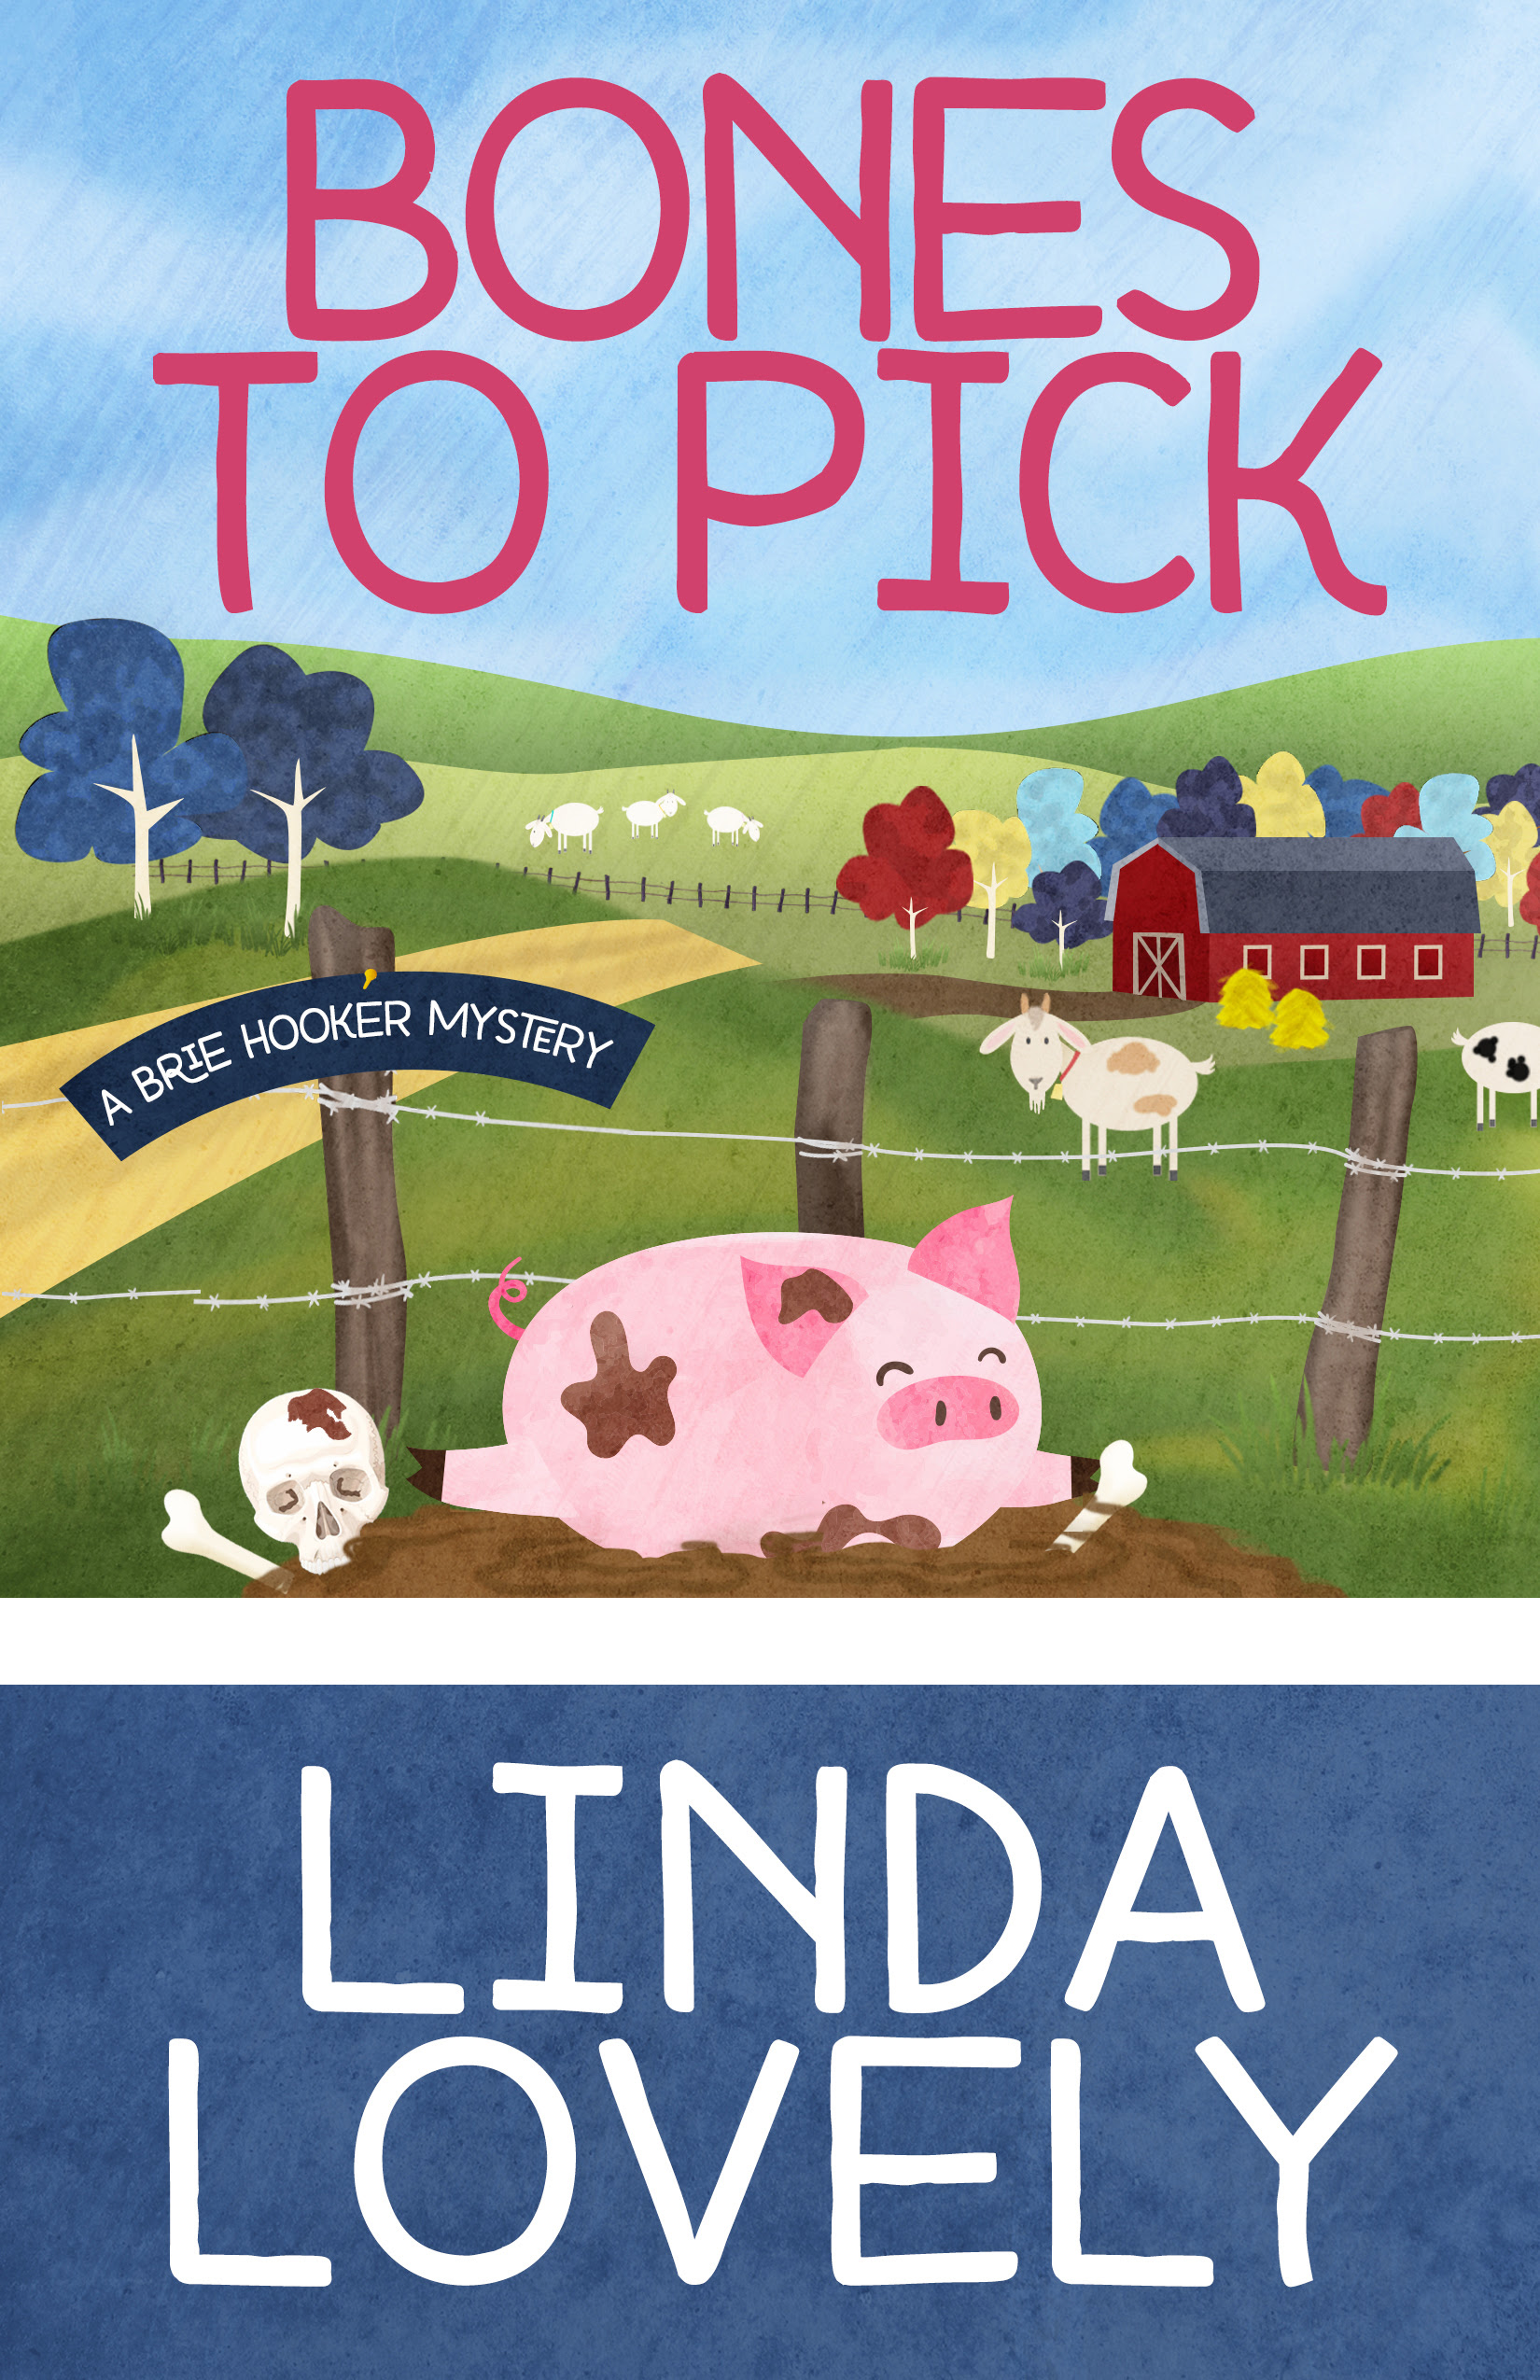 Bones To Pick by Linda Lovely